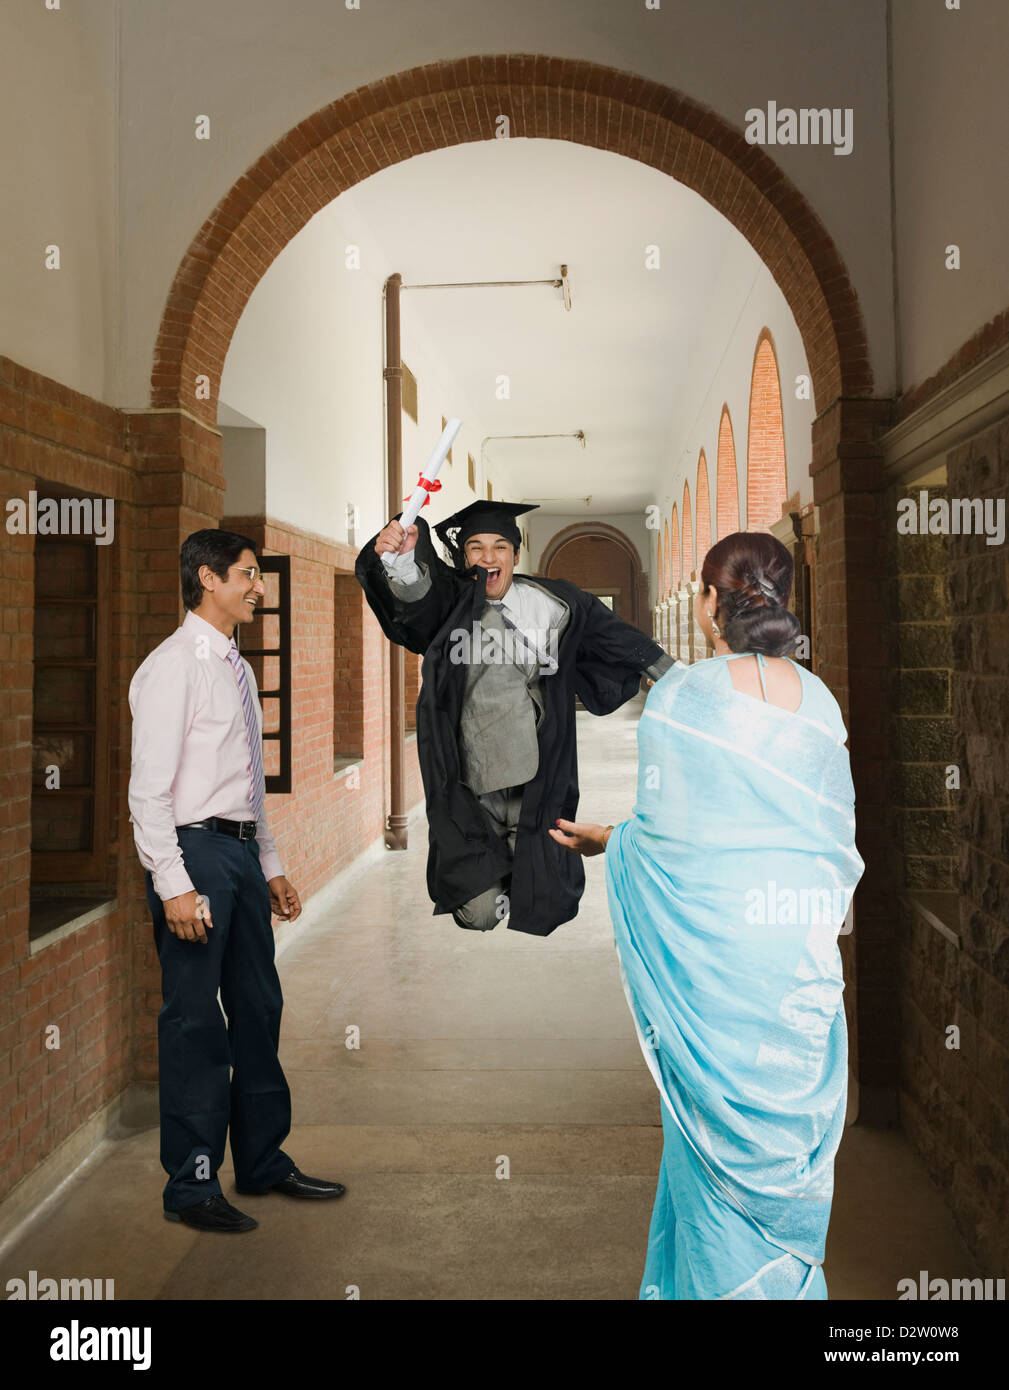 University student celebrating after getting his diploma - Stock Image